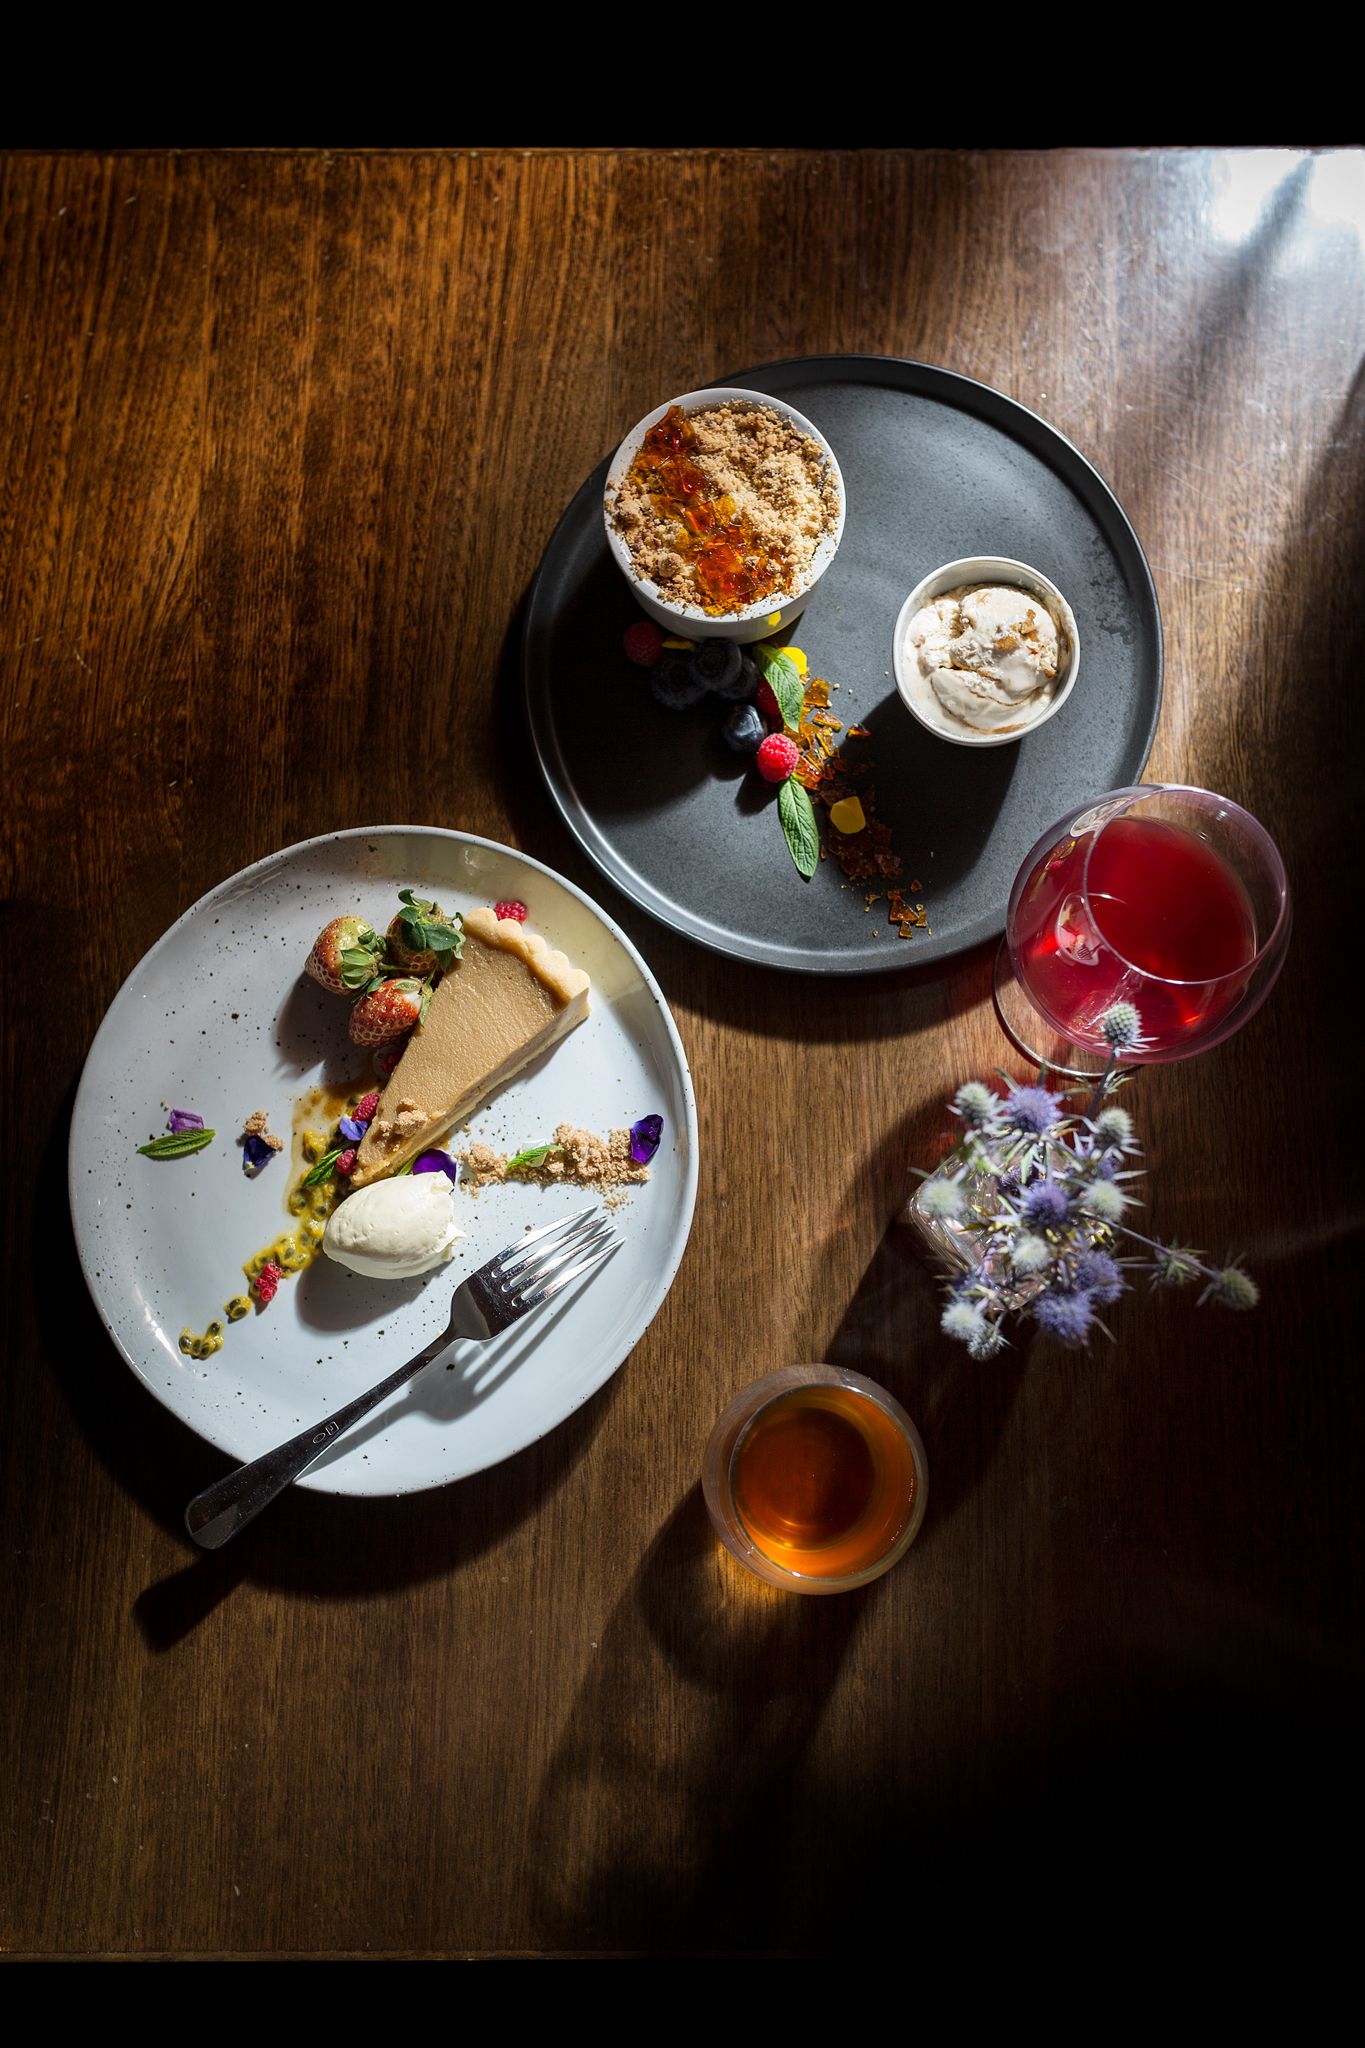 Cakes and Pastries at First Edition Canberra